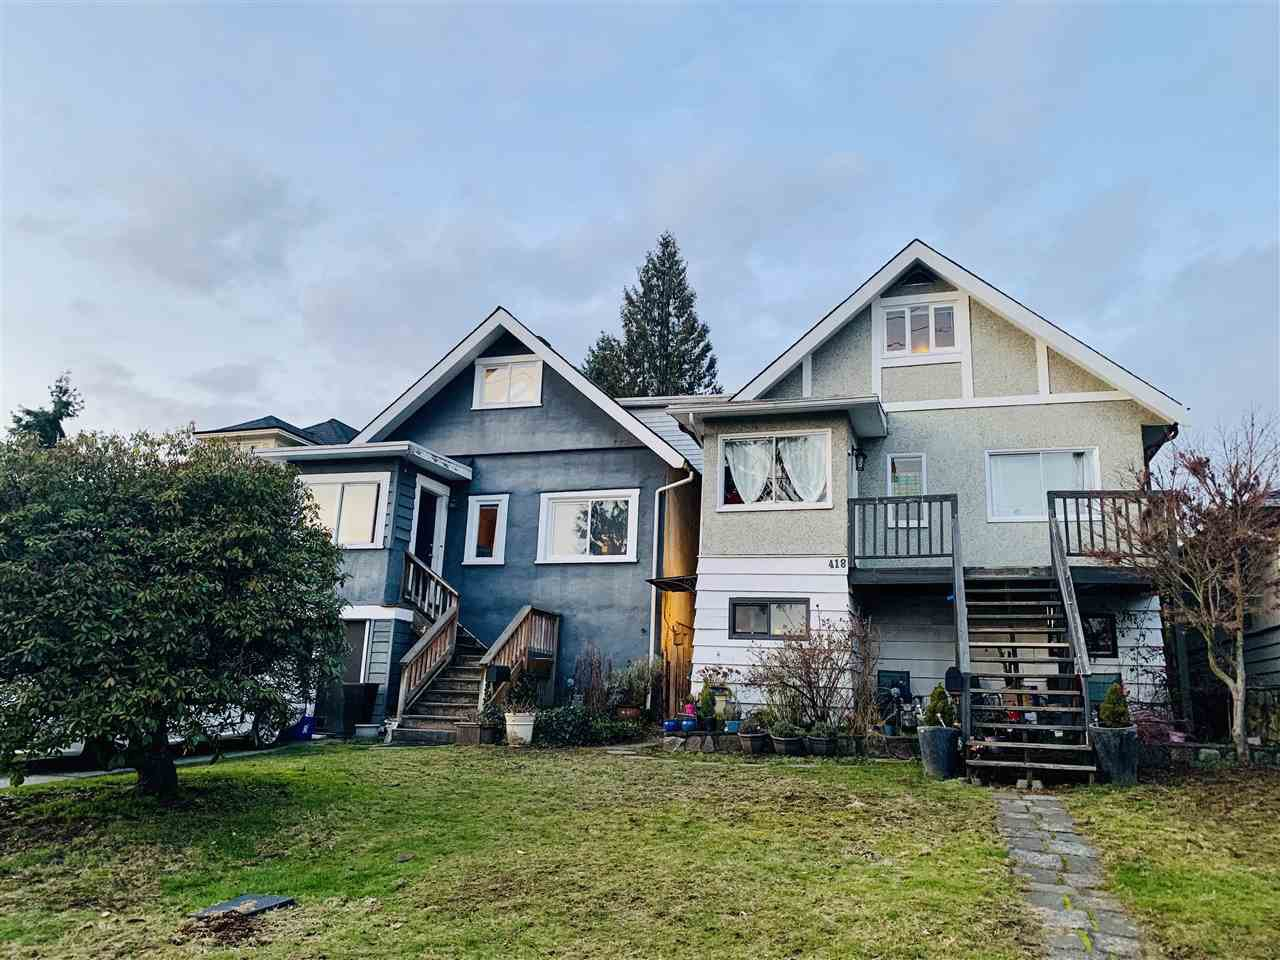 """Main Photo: 416 418 E 16TH Street in North Vancouver: Central Lonsdale House for sale in """"Grand Boulevard"""" : MLS®# R2473360"""